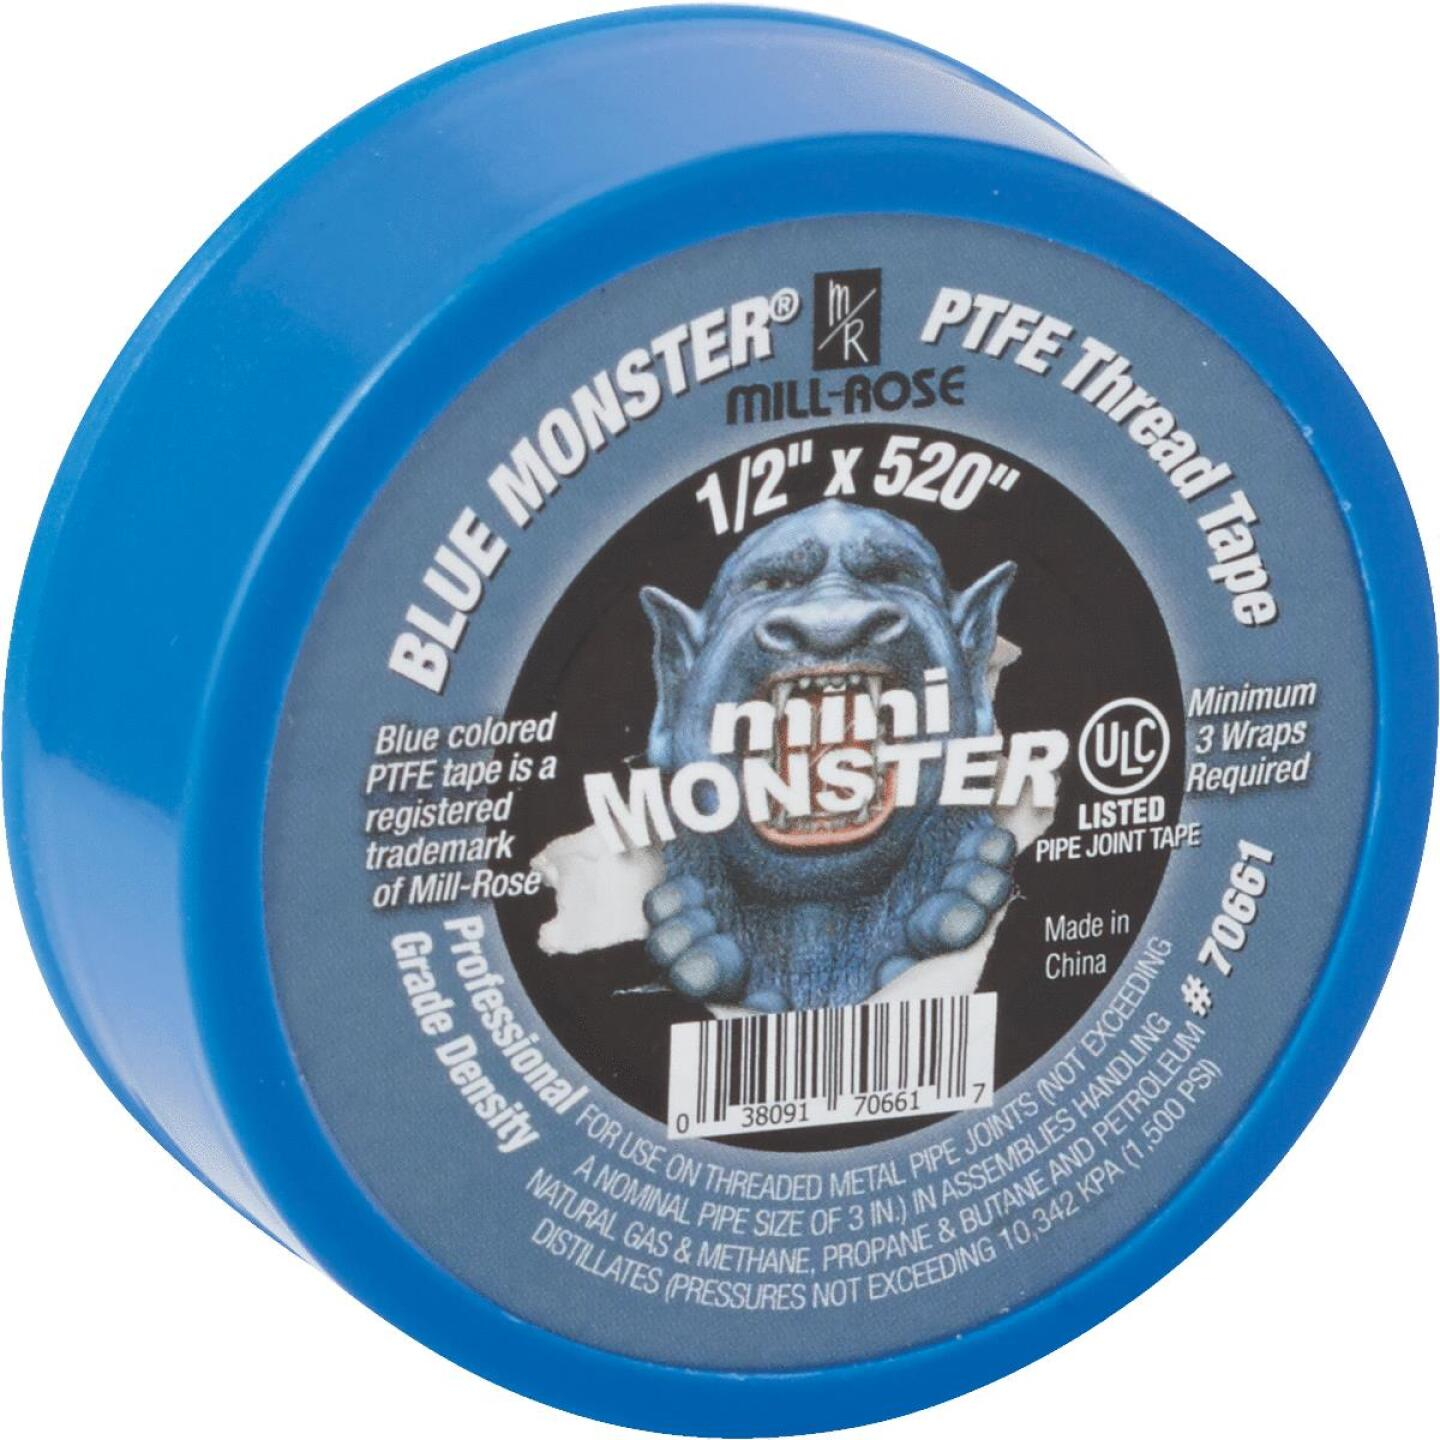 BLUE MONSTER 1/2 In. x 520 In. Blue Thread Seal Tape Image 2